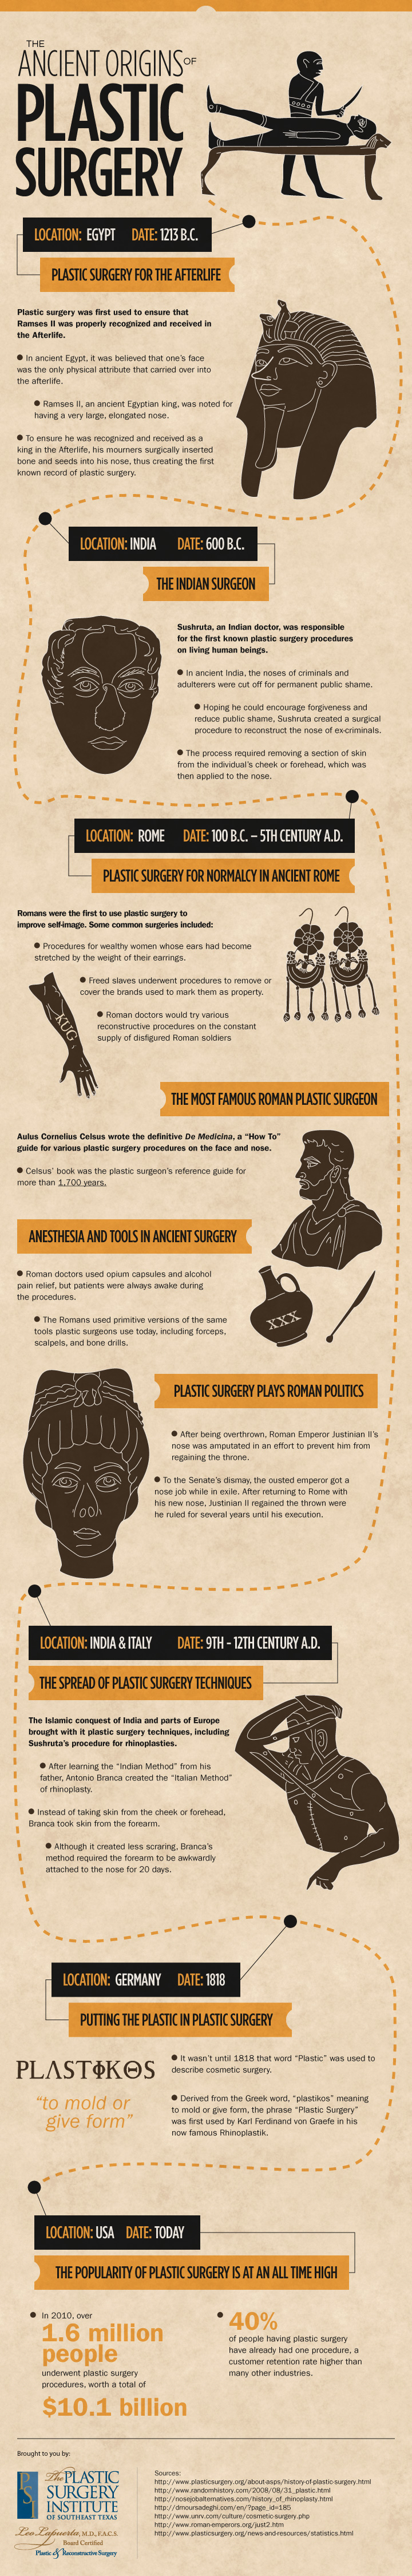 Ancient Origins of Plastic Surgery